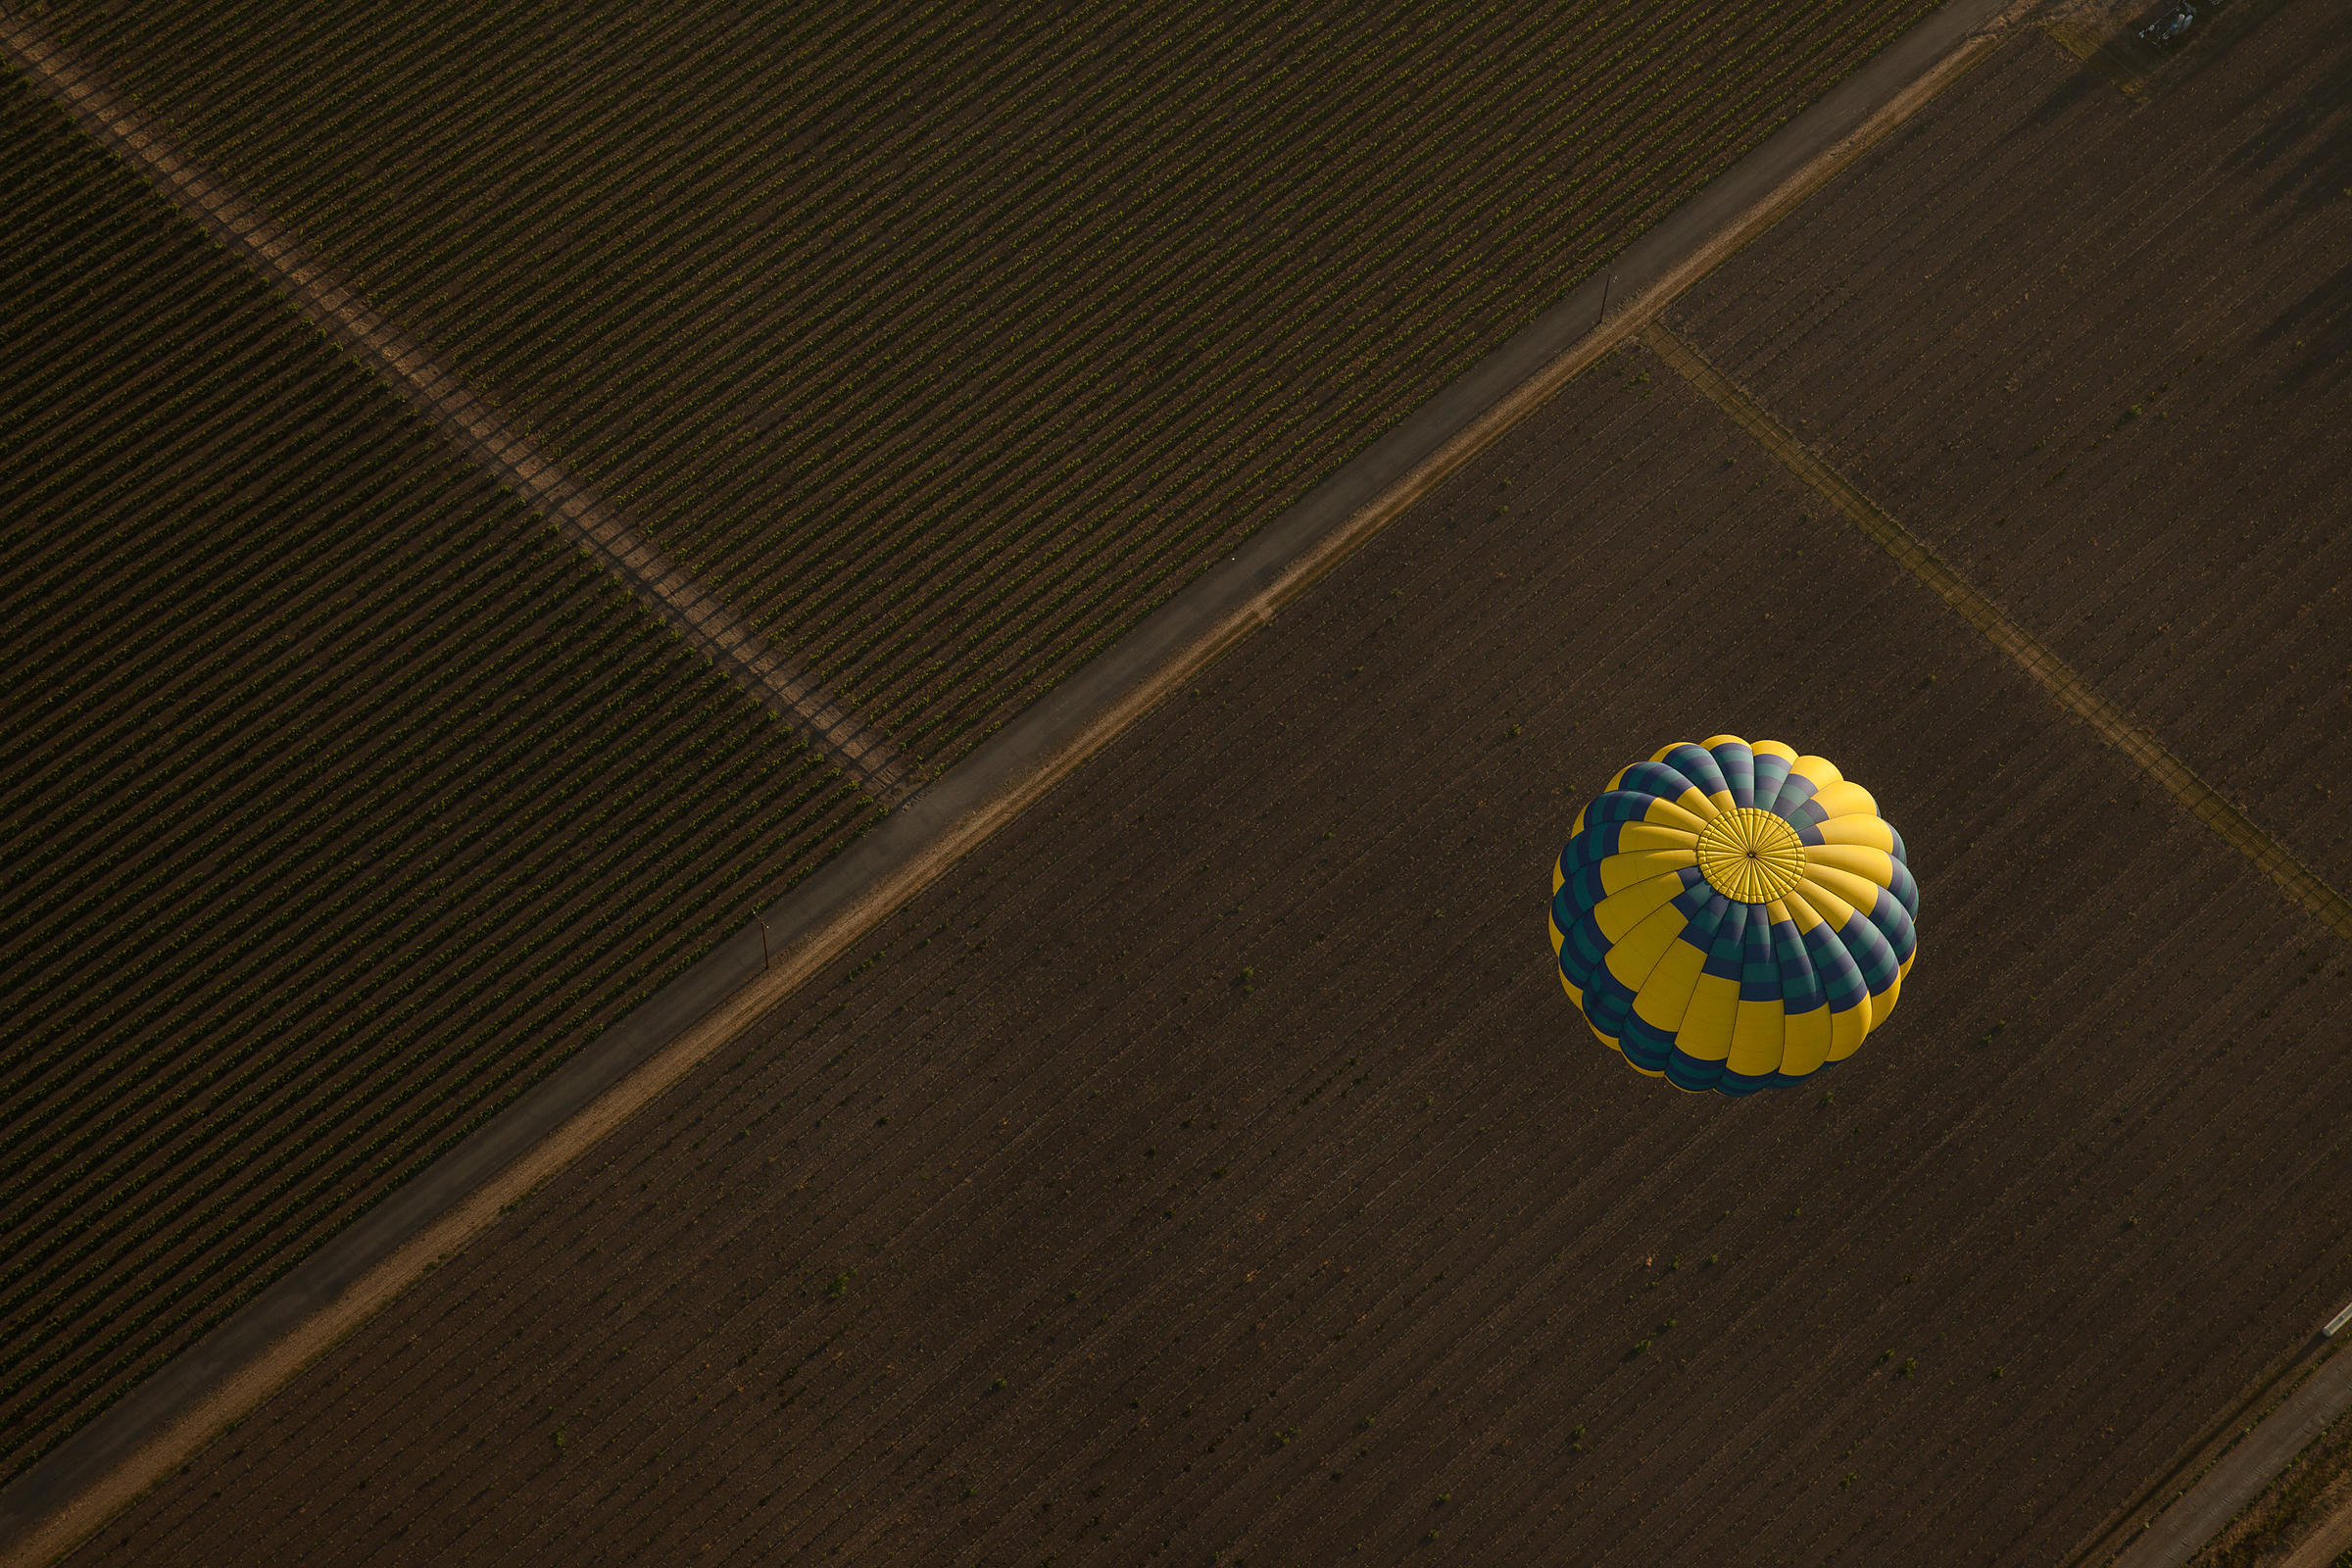 Aerial photo of a hot air balloon floating over a Napa Valley vineyard